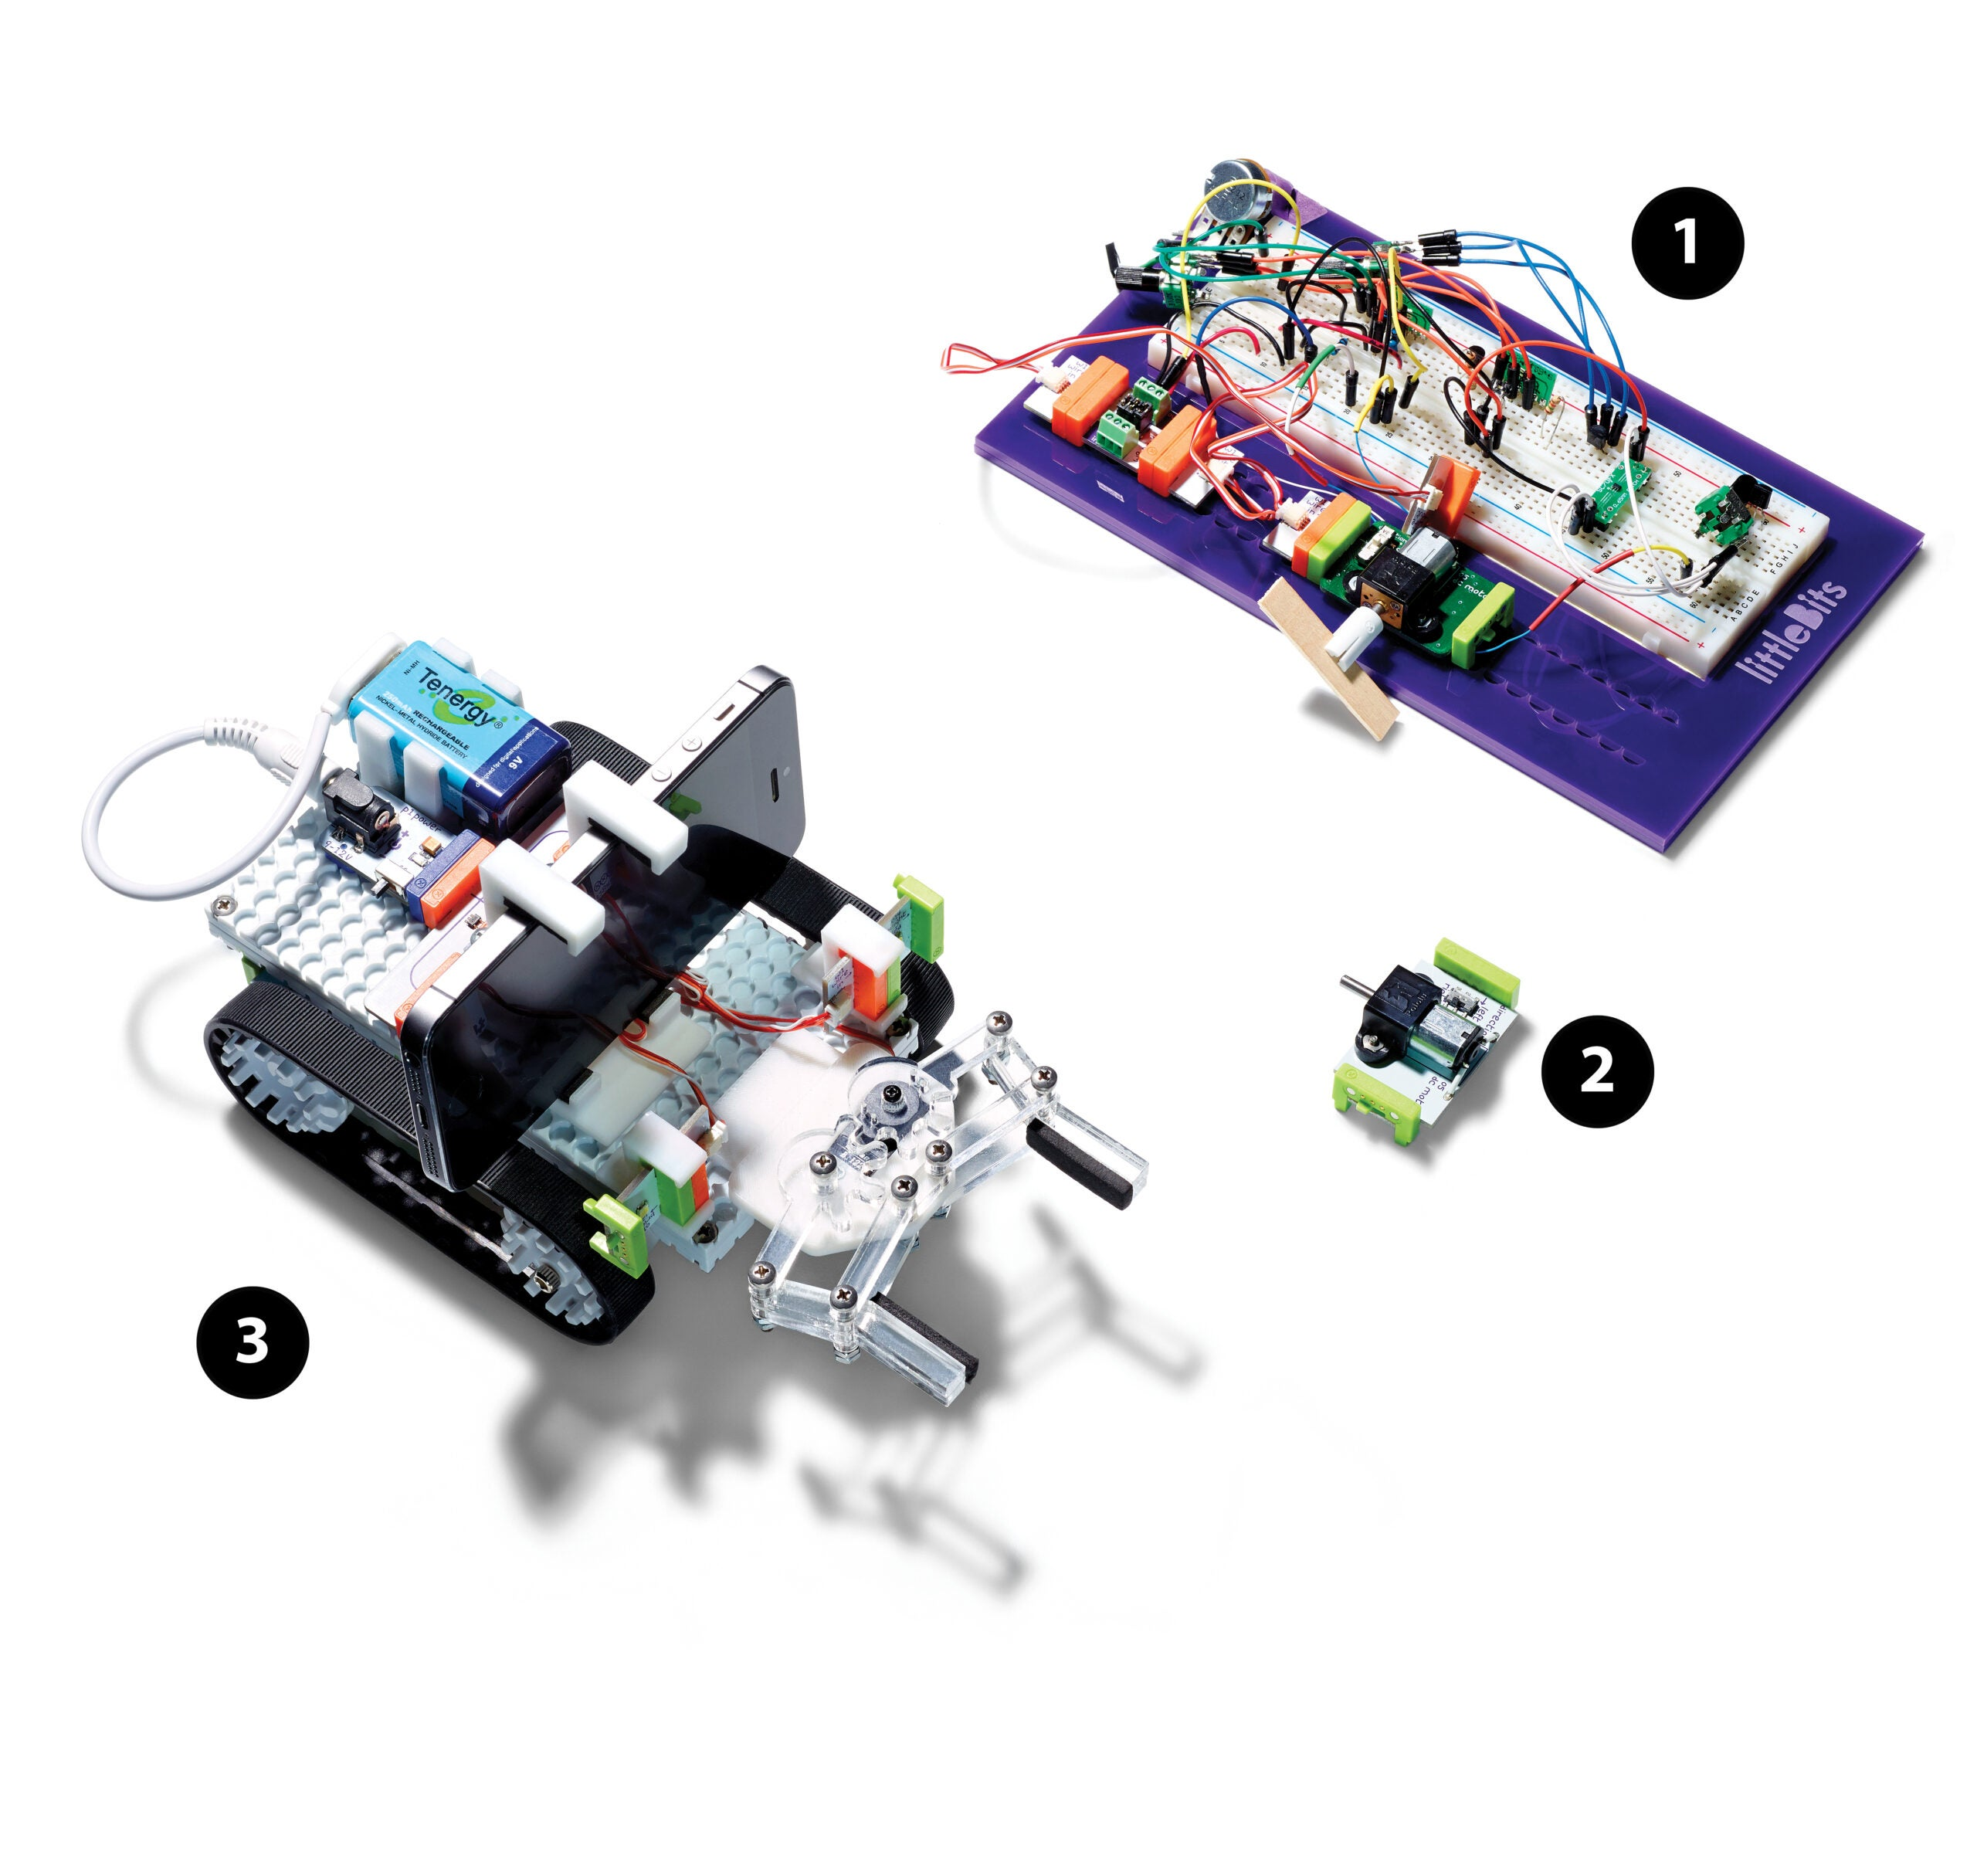 How littleBits Engineers Turn Their Ideas Into DIY Kits